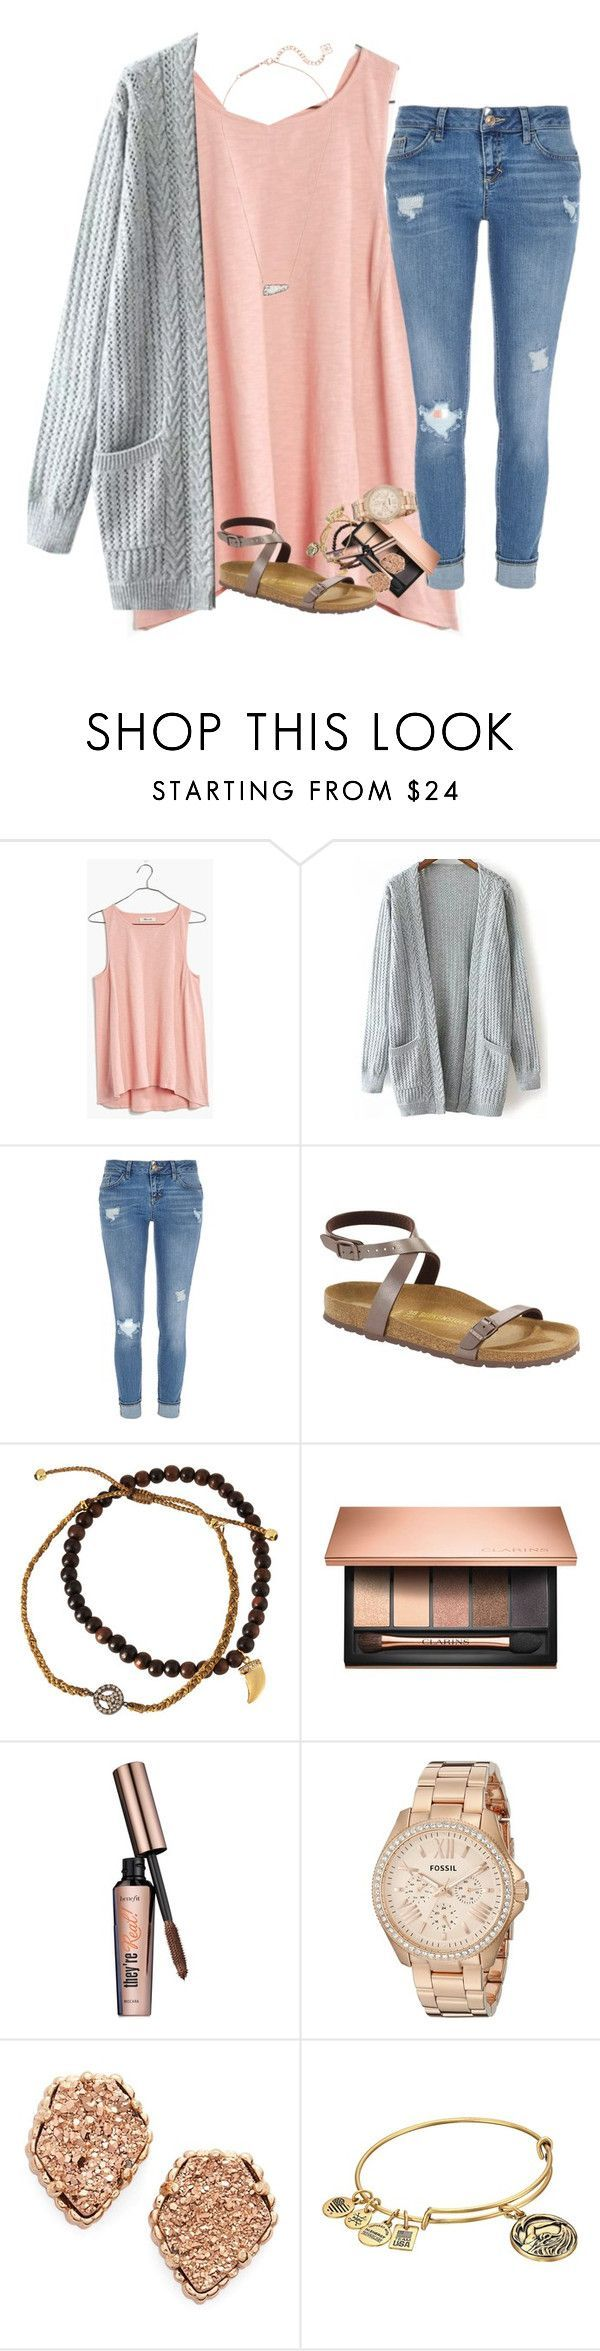 """Fall"" by kyliegrace ❤️ liked on Polyvore featuring beauty, Madewell, River Island, Birkenstock, Tai, Clarins, Benefit, FOSSIL, Kendra Scott and Alex and Ani"